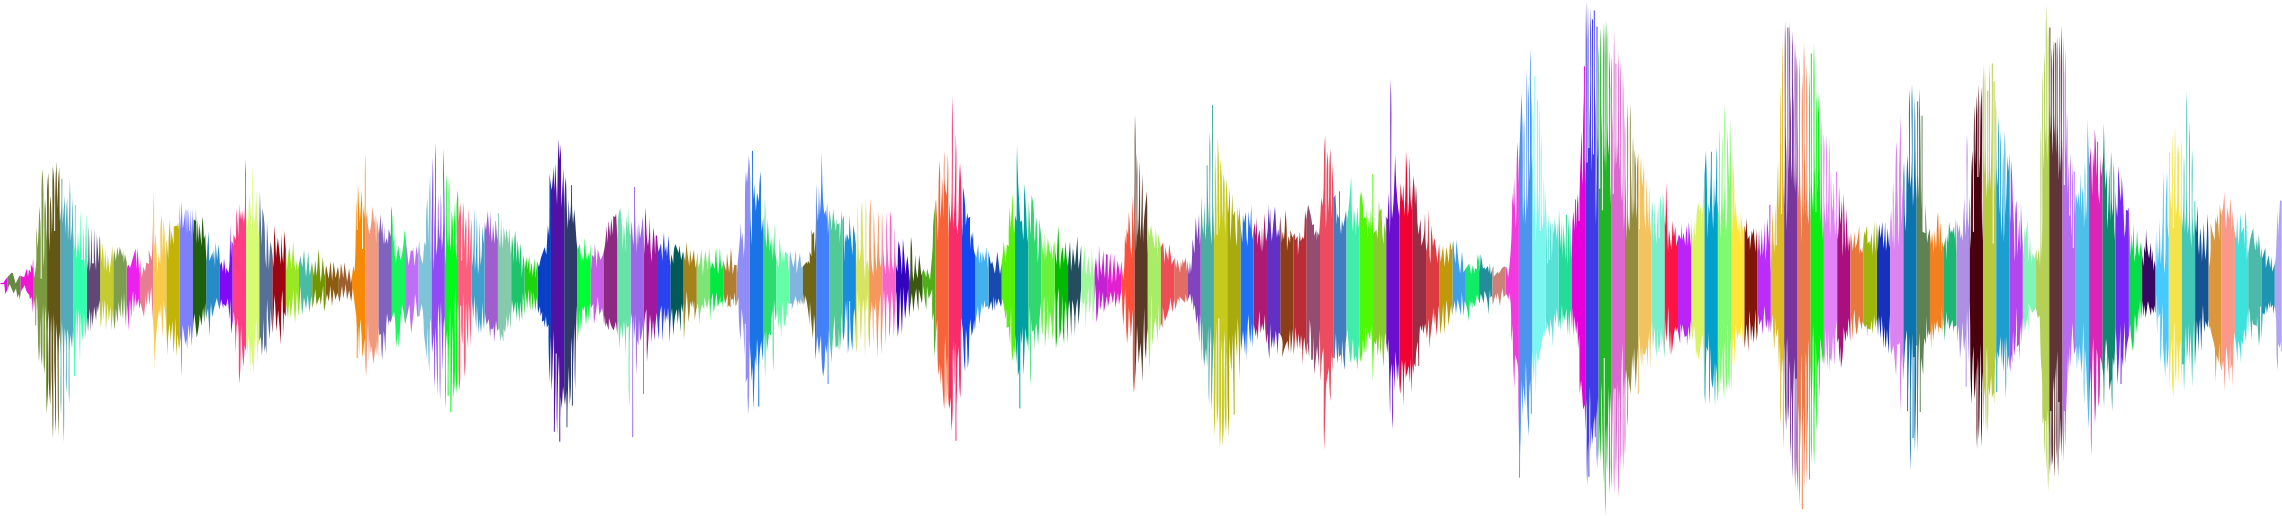 Clipart waves fire. Rgb sound wave no